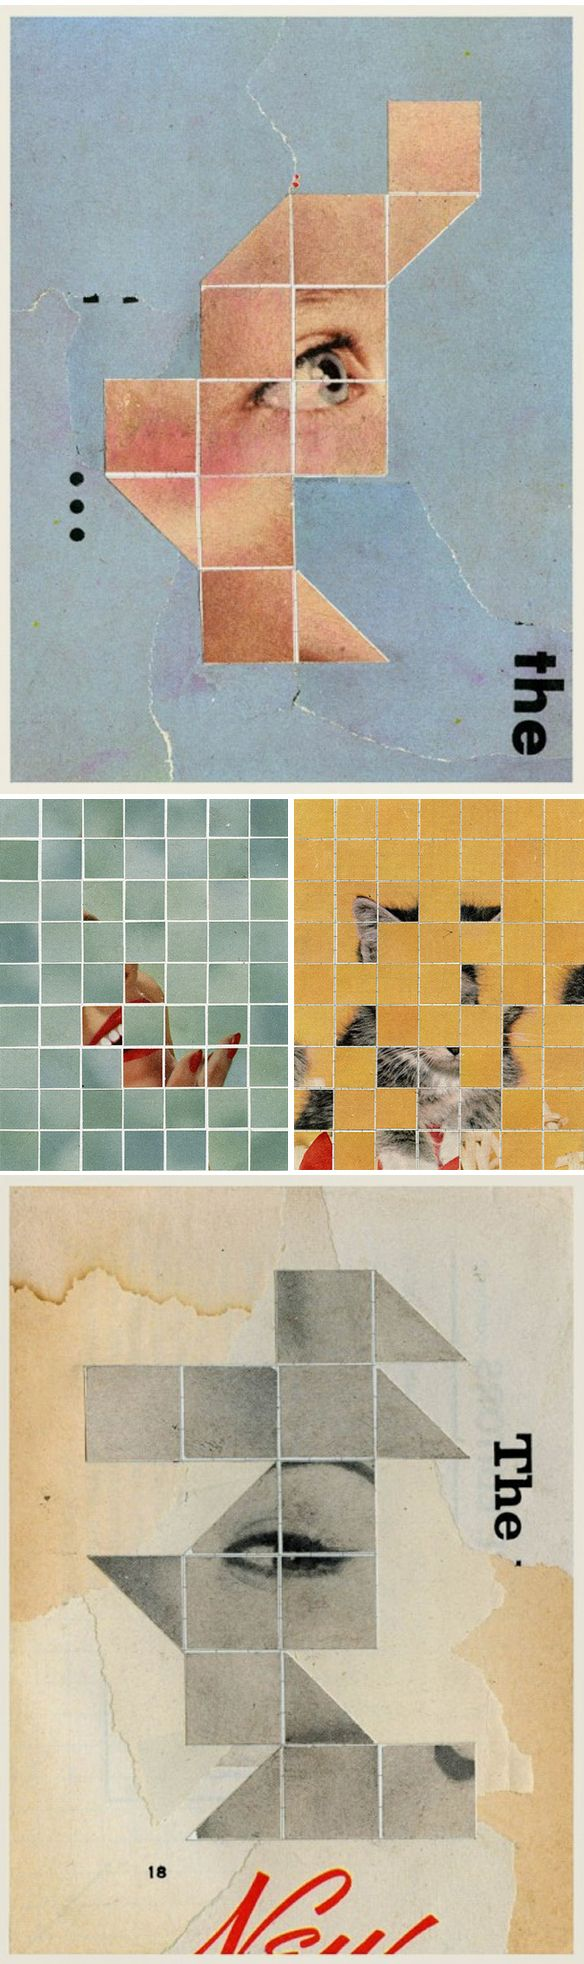 anthony gerace - collage: There Must Be More to Life Than This